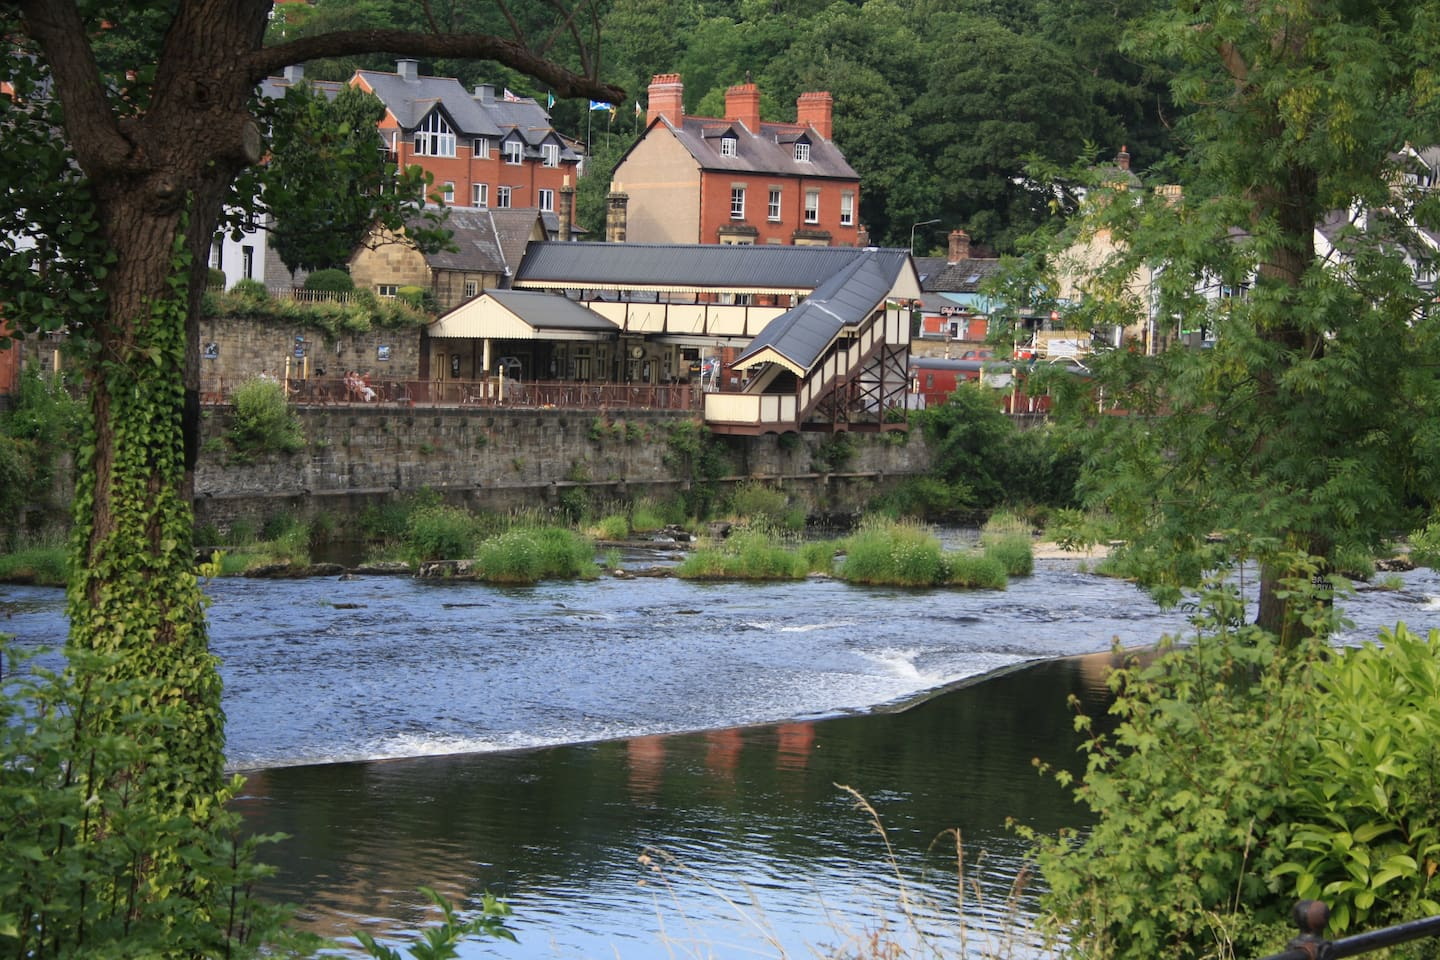 The Llangollen railway just across the Dee. This is the view from the end of the garden, a perfect place to sit outside and unwind.